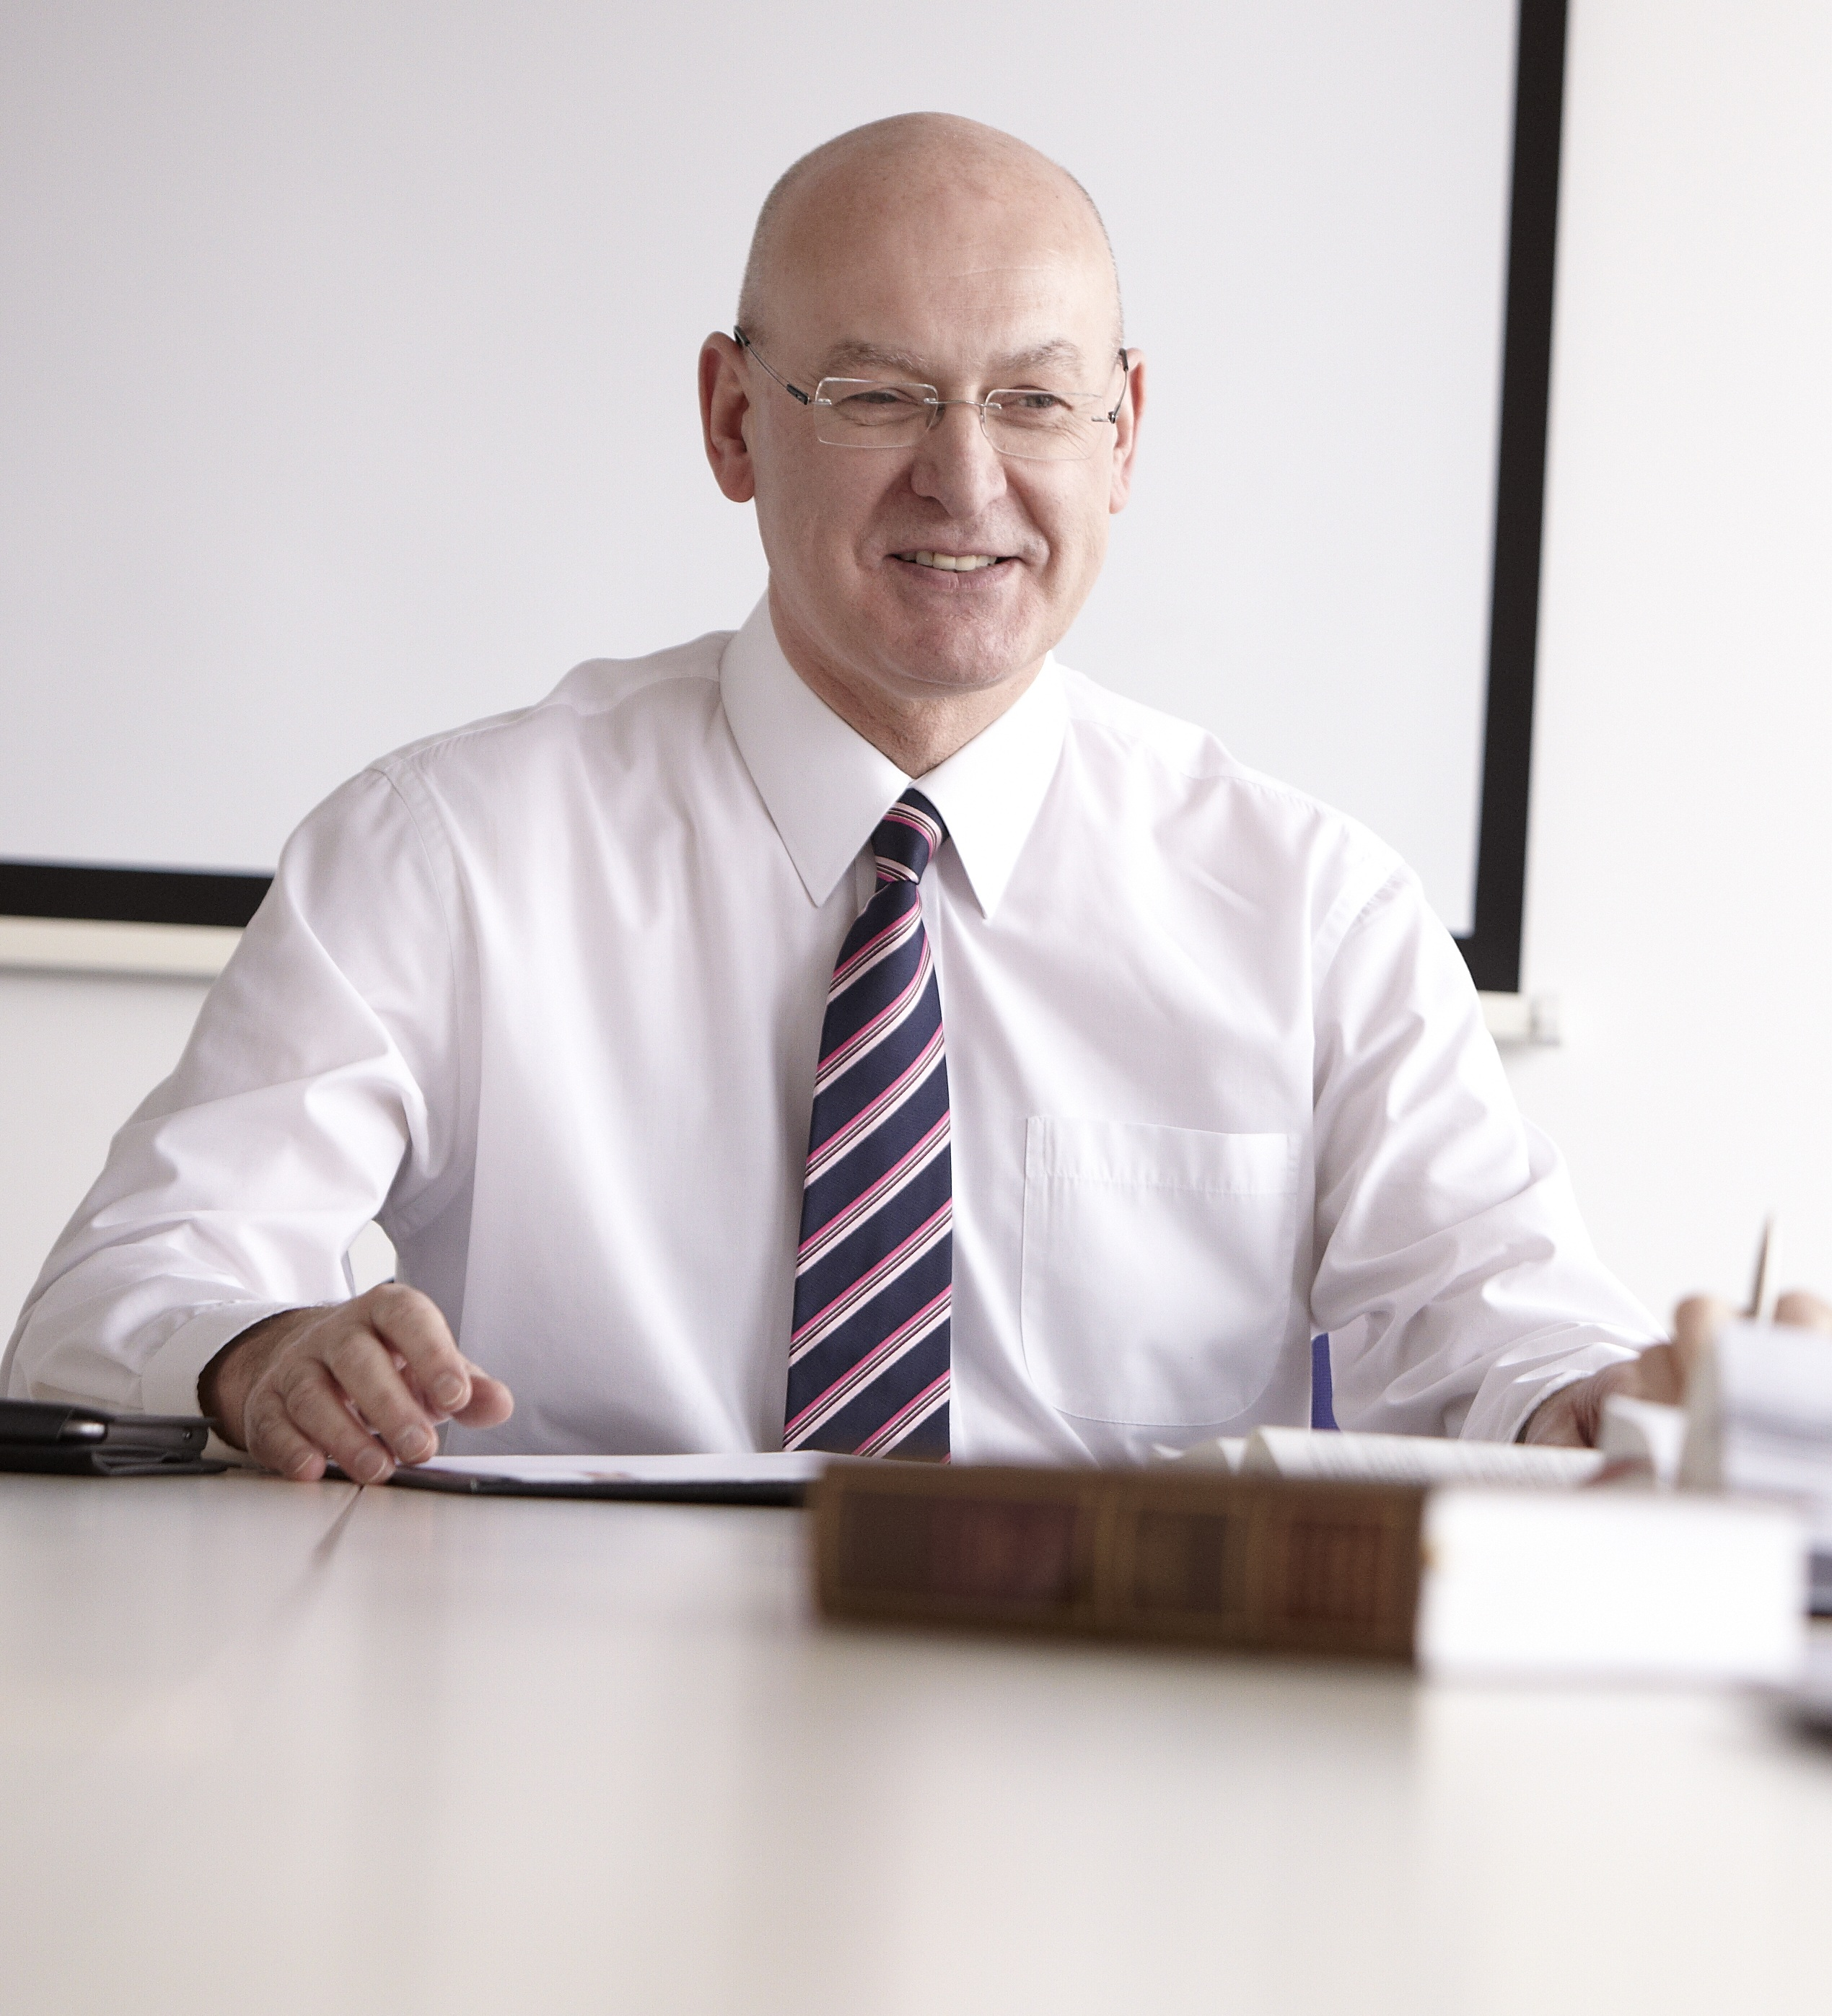 Colin Flanagan, chairman of Freeth Cartwright